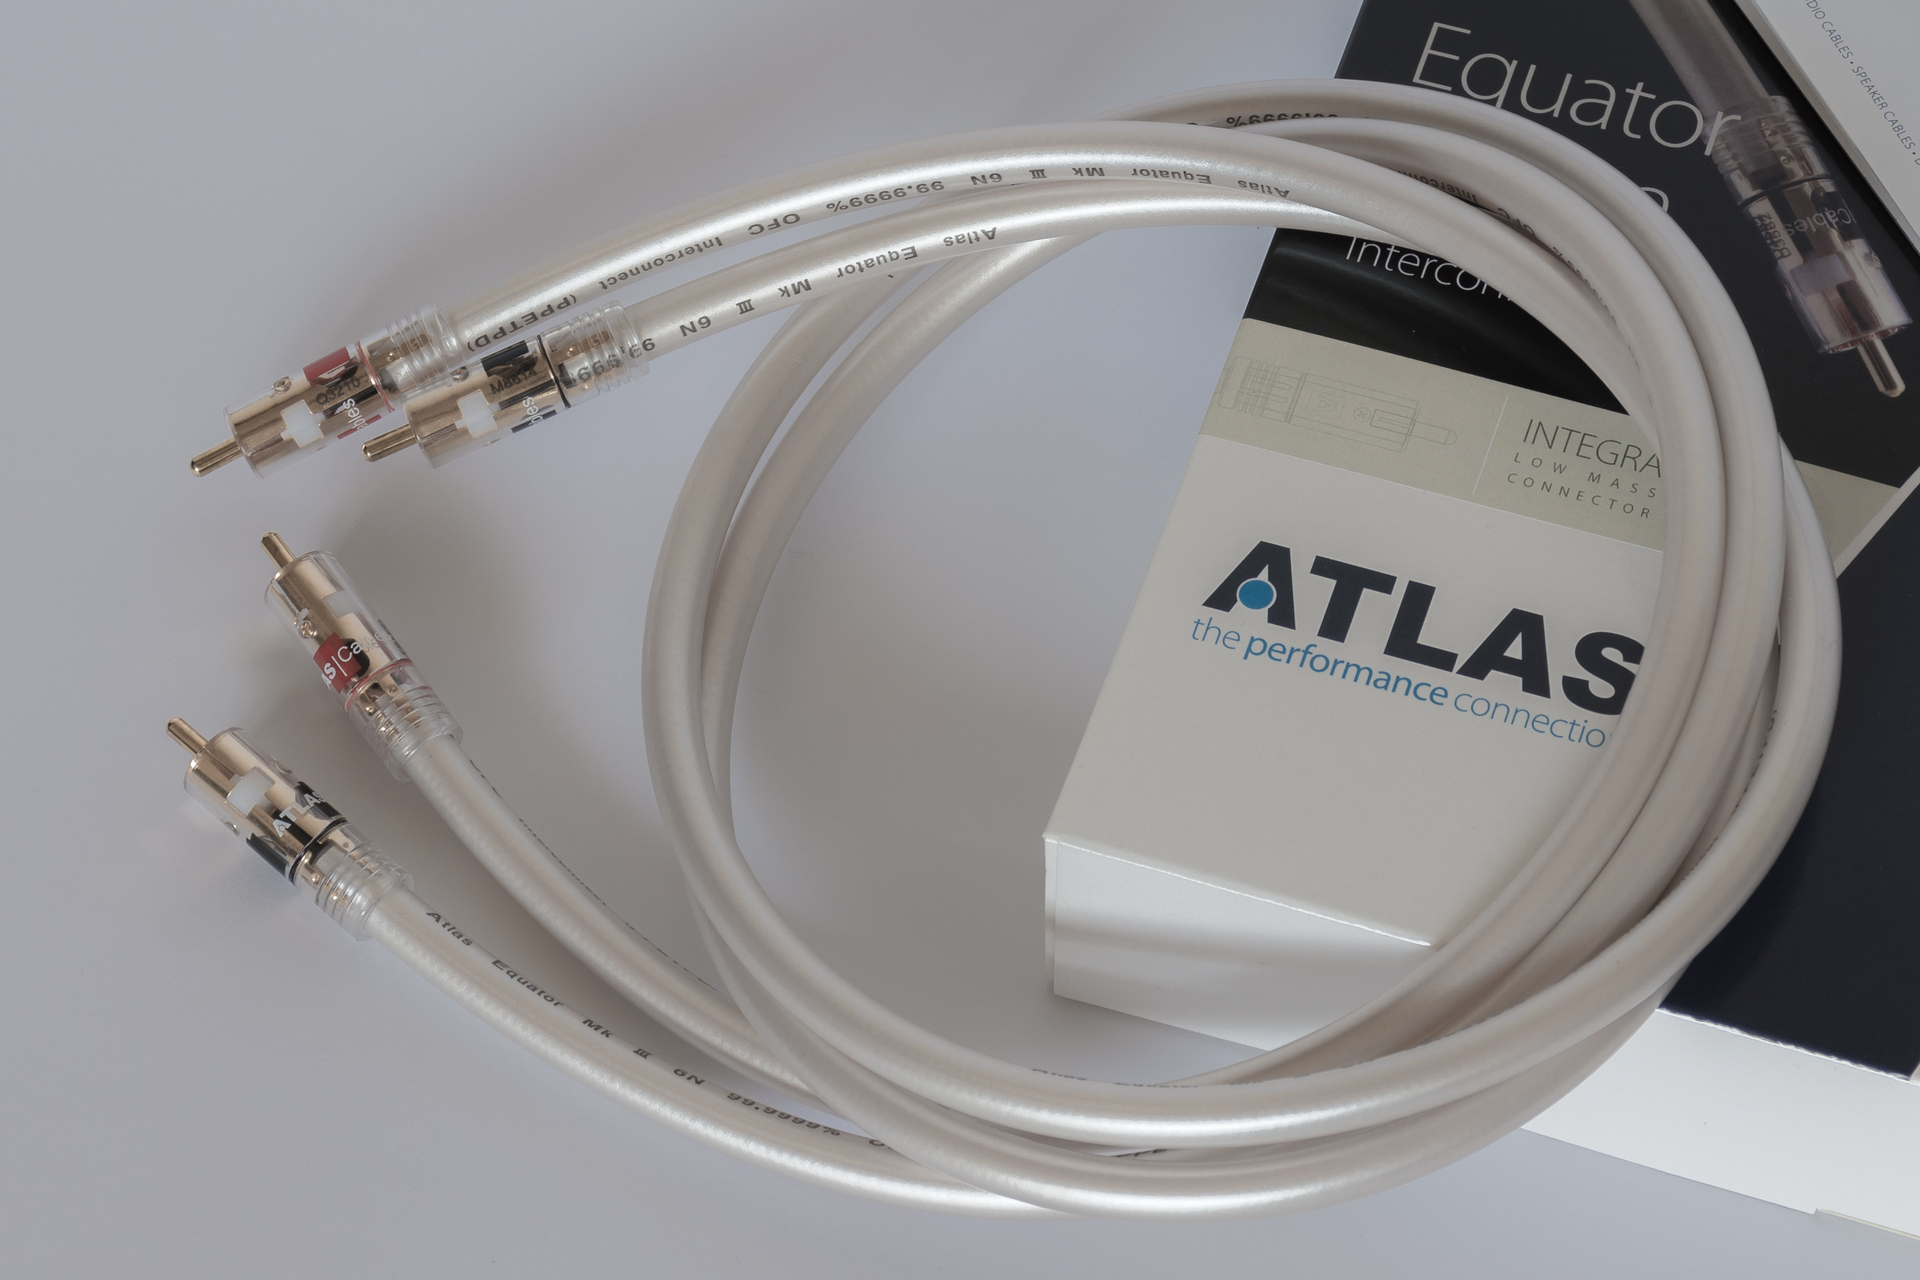 ATLAS Equator Integra RCA 1.0m